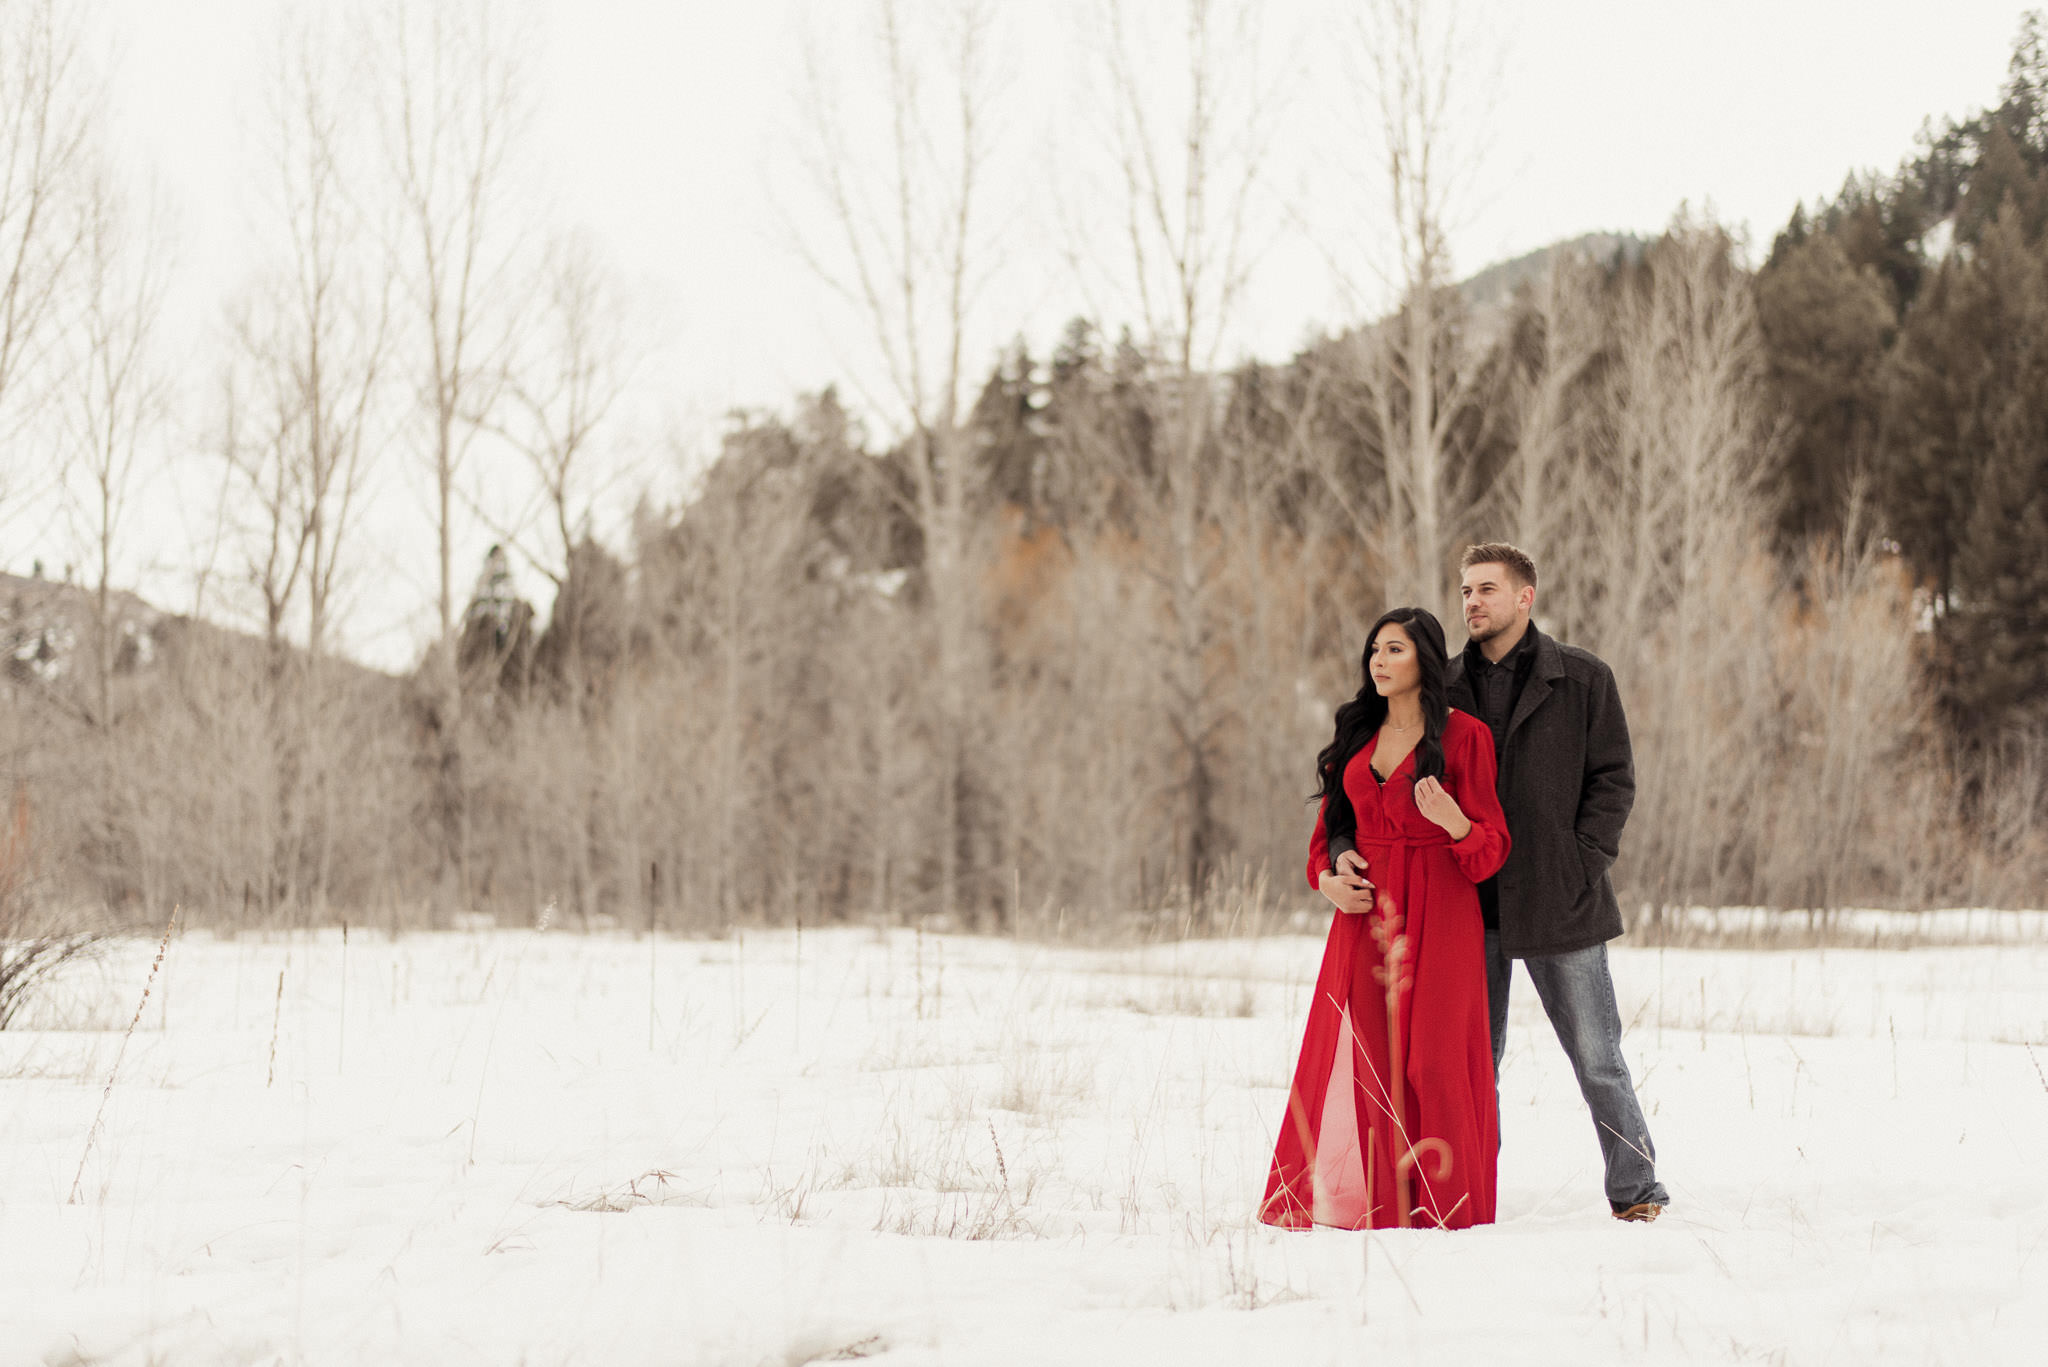 sandra-ryan-colorado-winter-snow-engagement-couples-valentines-red-houston-photographer-sm-25.jpg